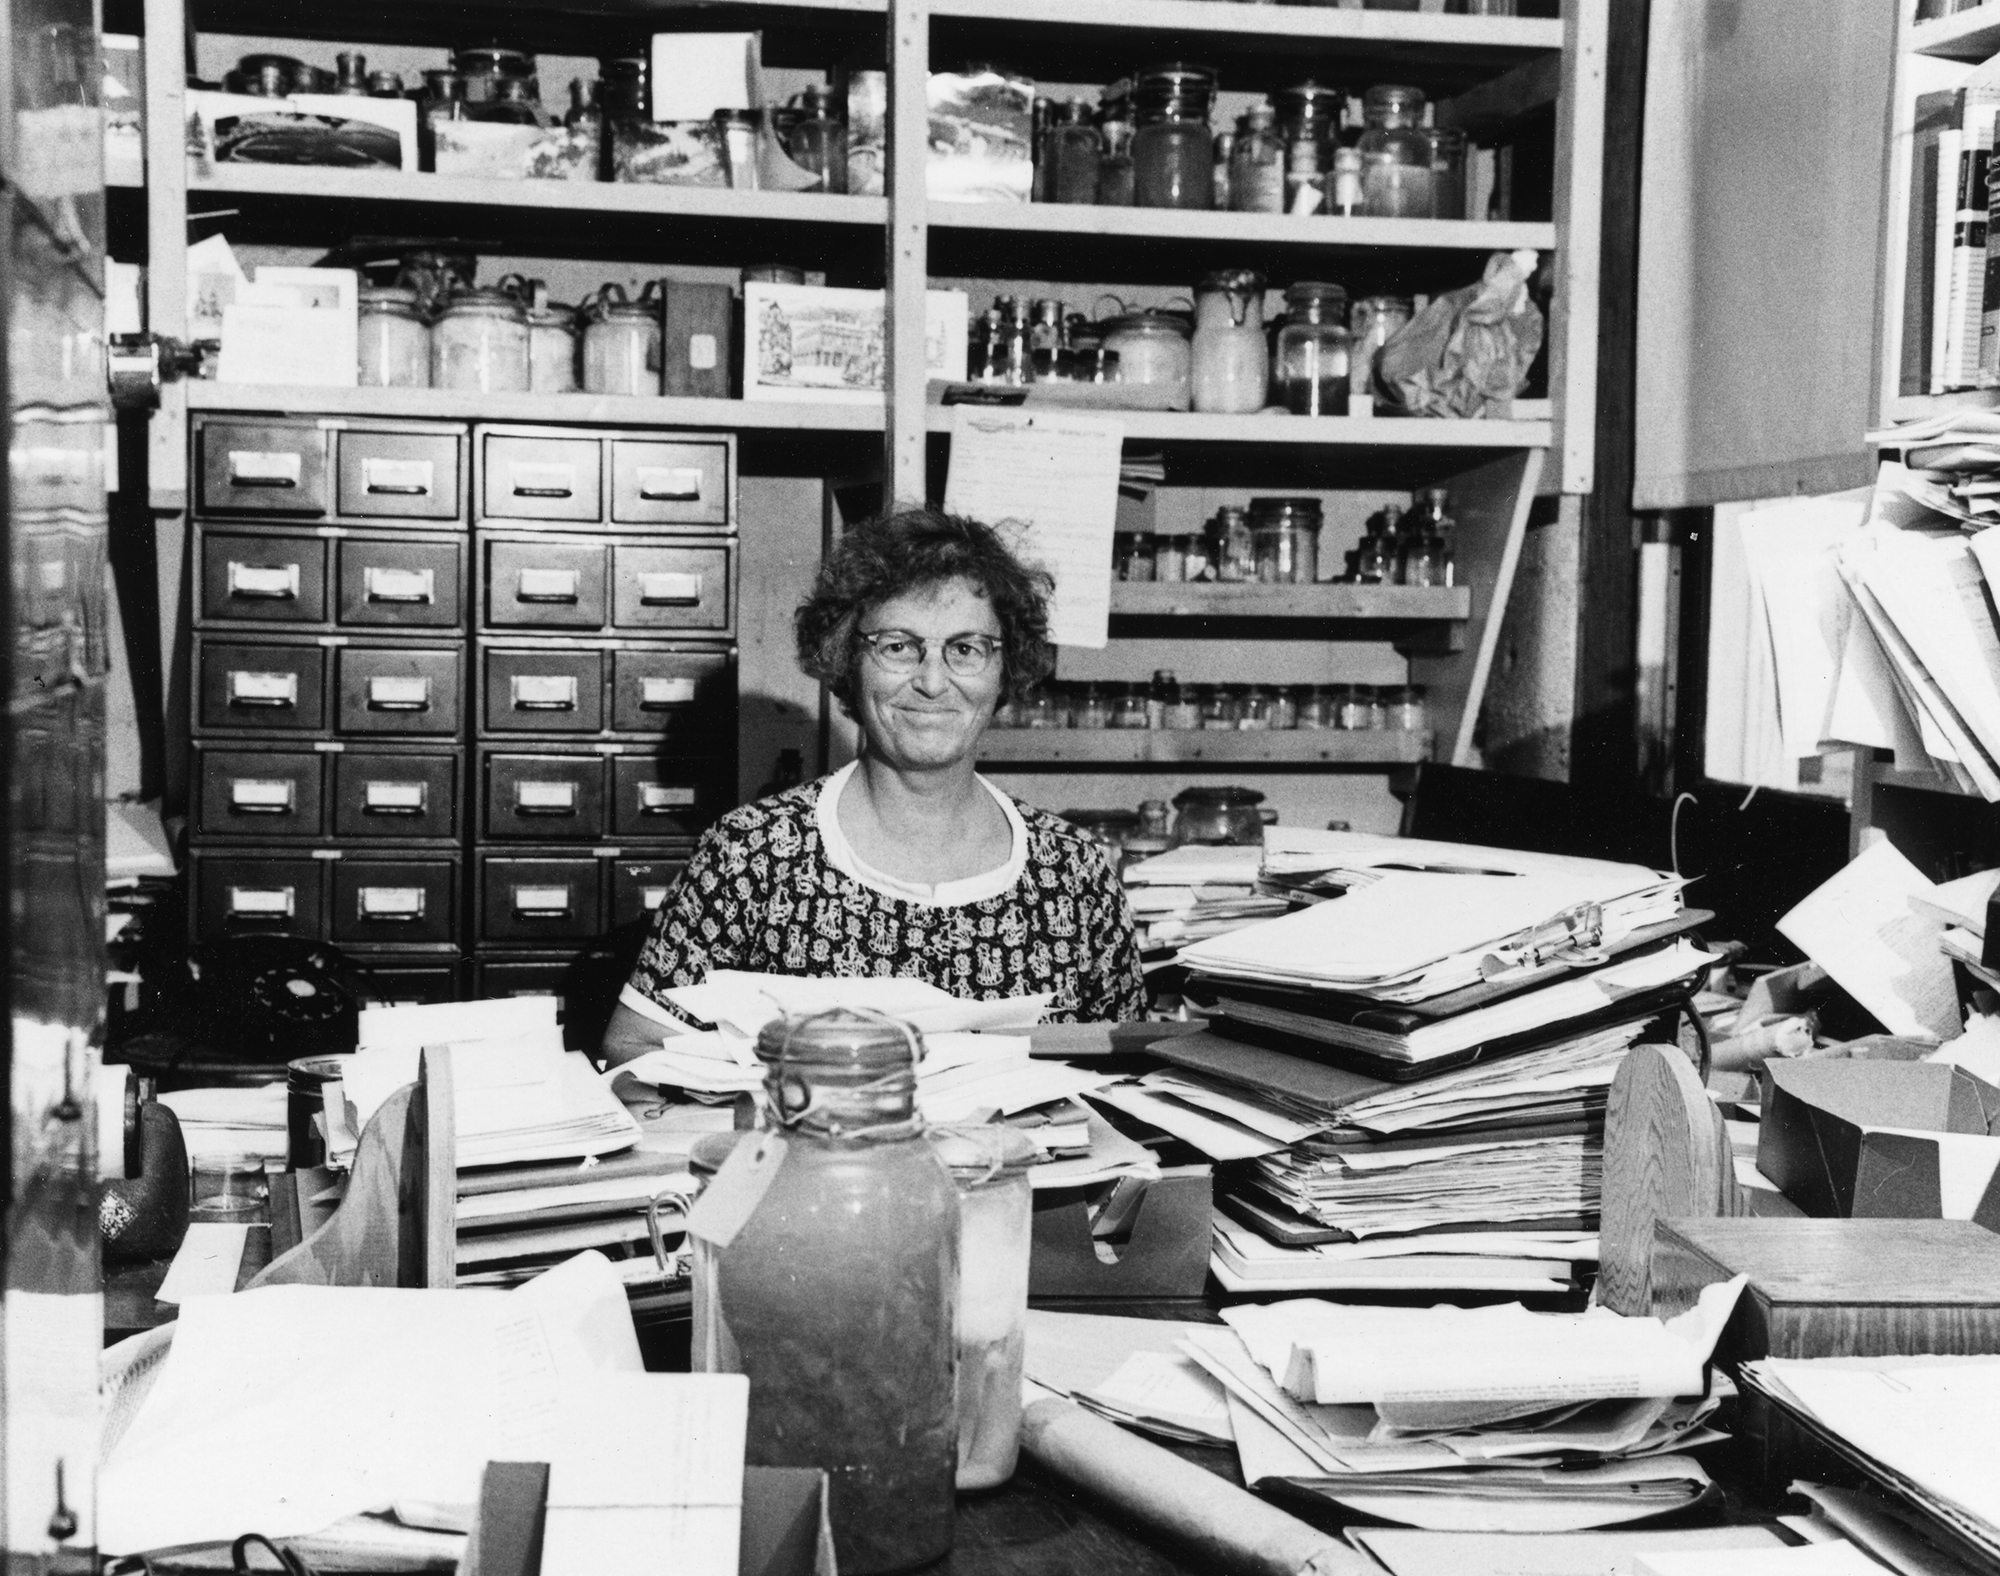 In this 1960 photo, Mary Sears is surrounded by papers and biological samples in her Bigelow Laboratory office.